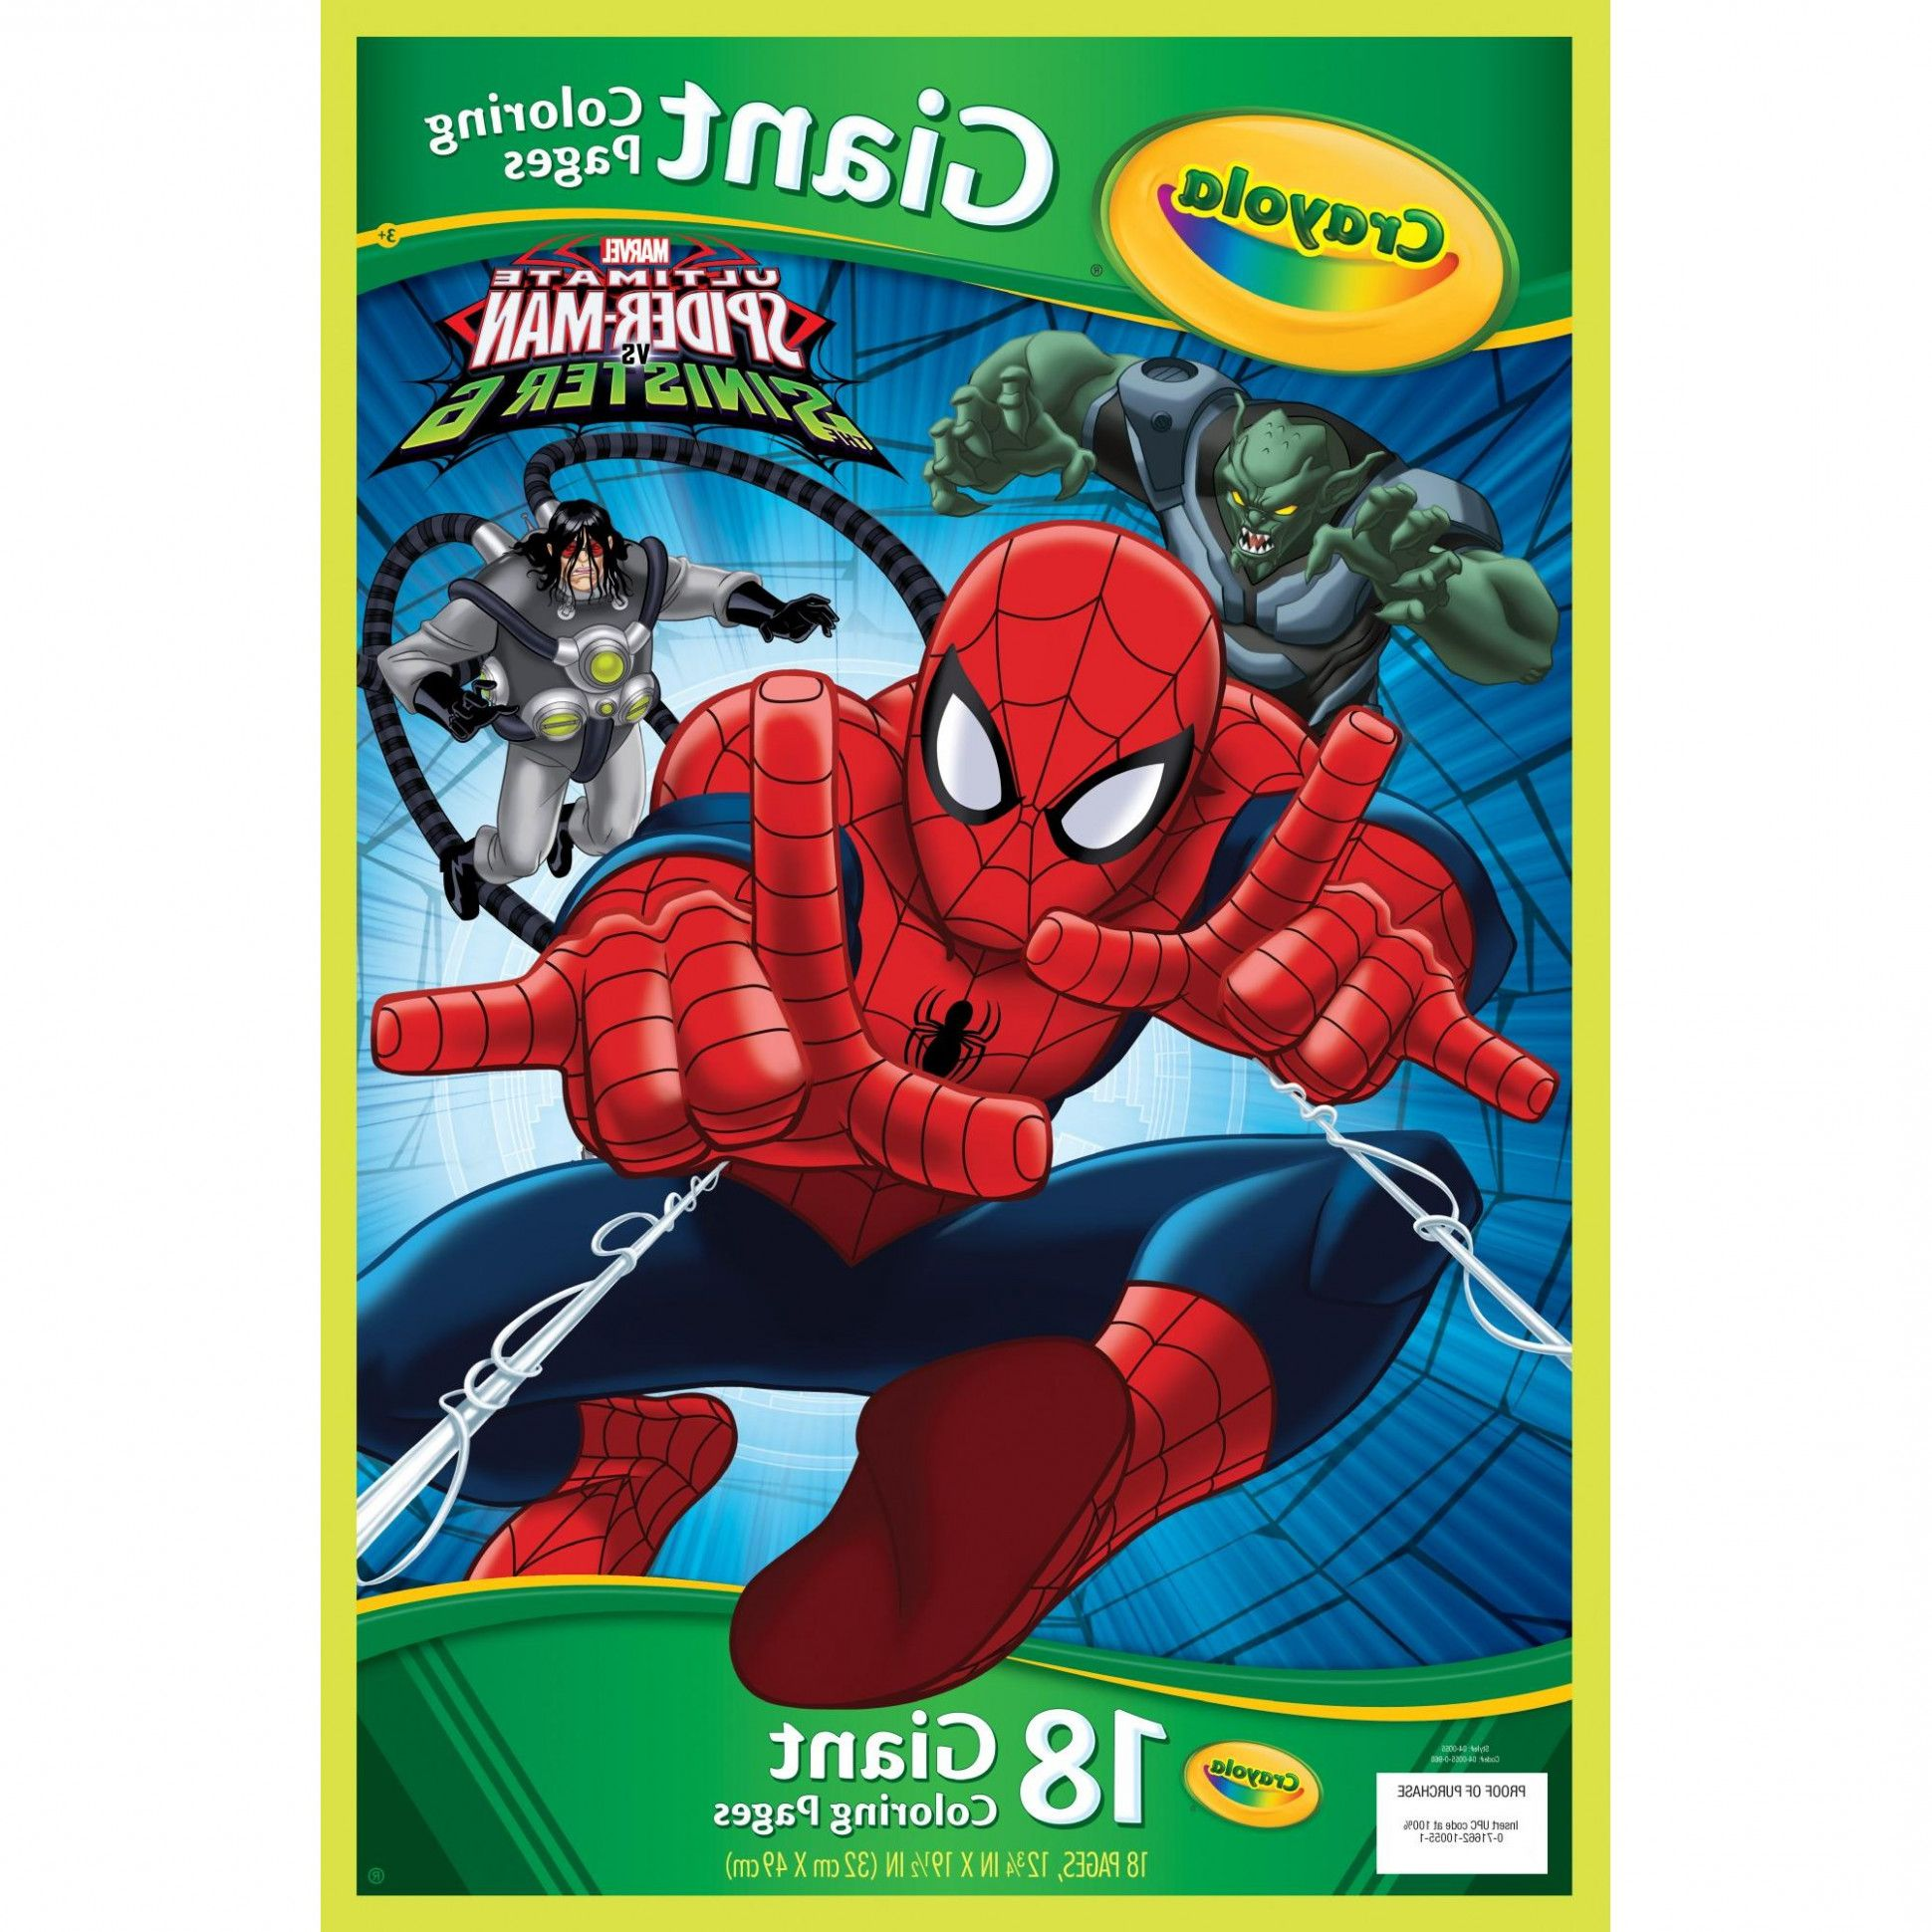 15 Fantastic Vacation Ideas For Spiderman Coloring Book Walmart Coloring Spiderman Coloring Crayola Coloring Pages Coloring Pages